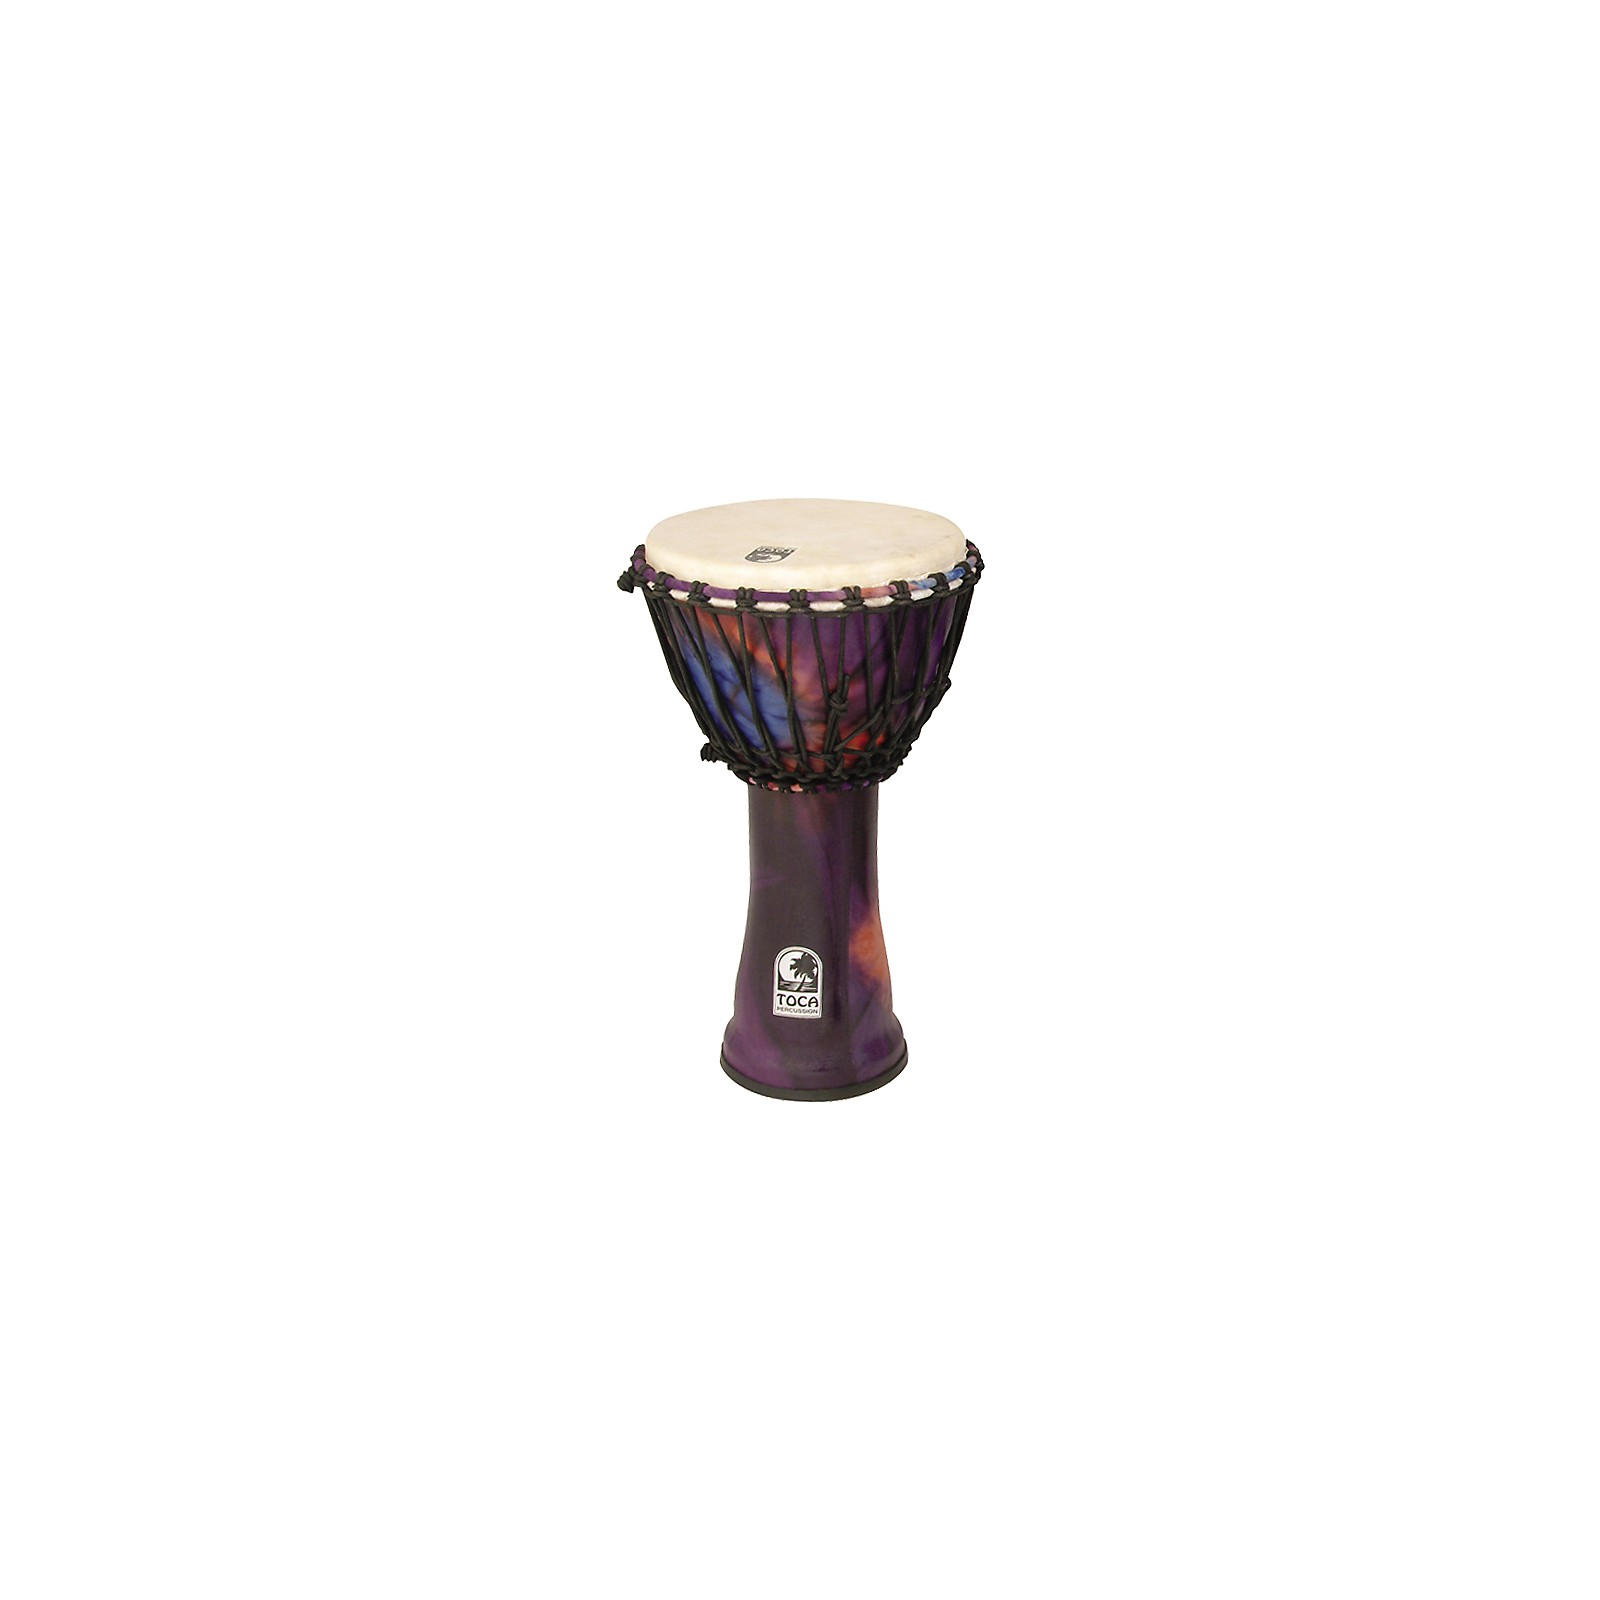 Toca Synergy Freestyle Rope Tuned Djembe